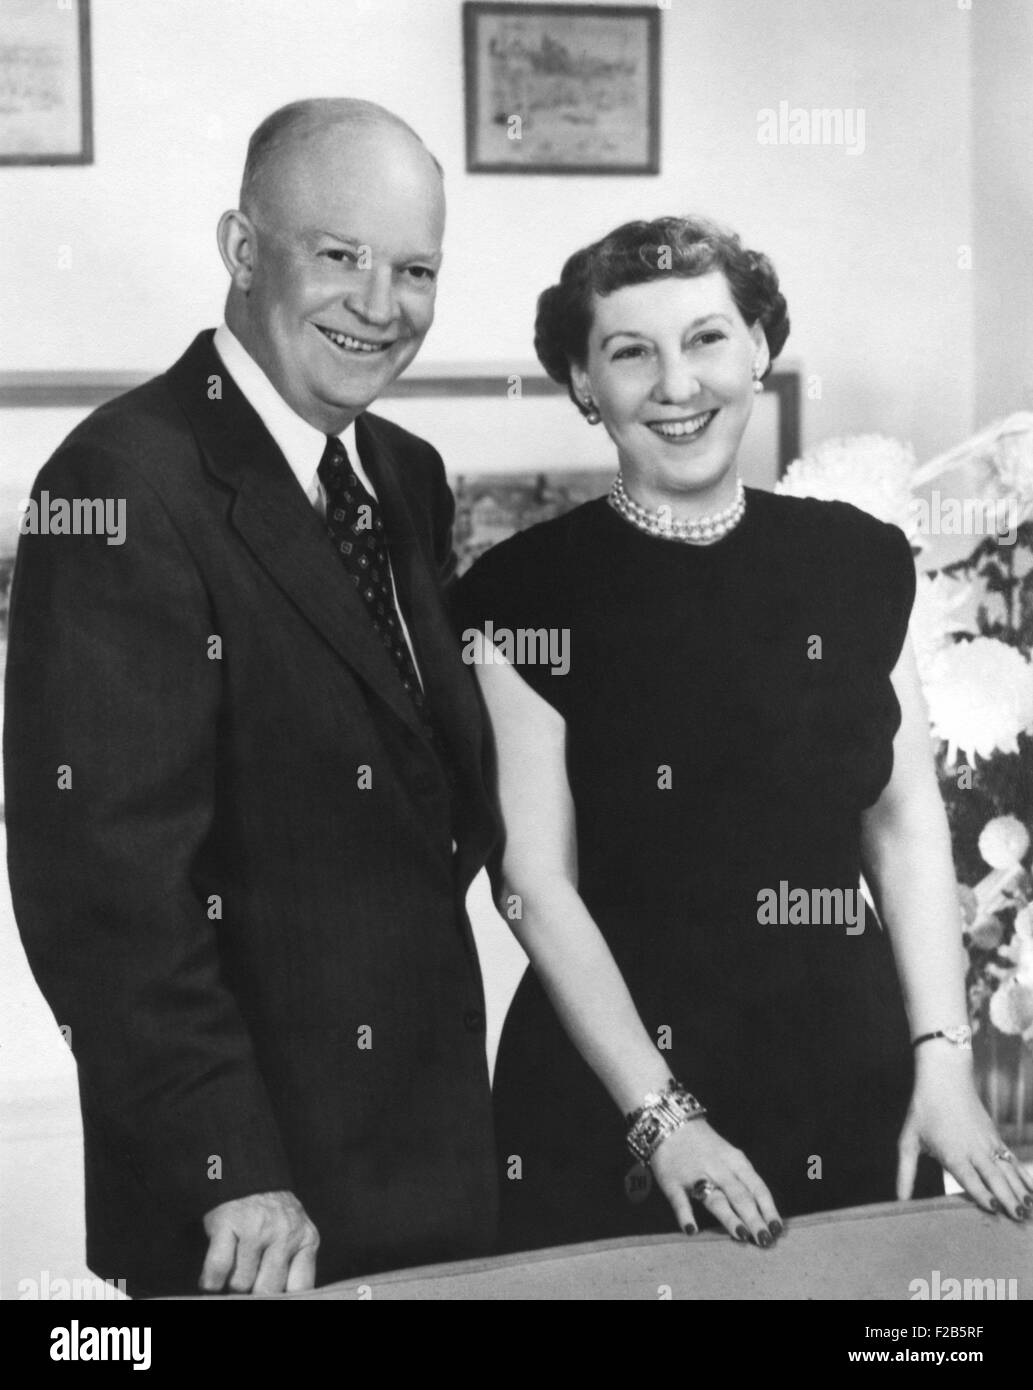 President Dwight Eisenhower and wife Mamie, 1953 - (BSLOC_2014_16_79) - Stock Image